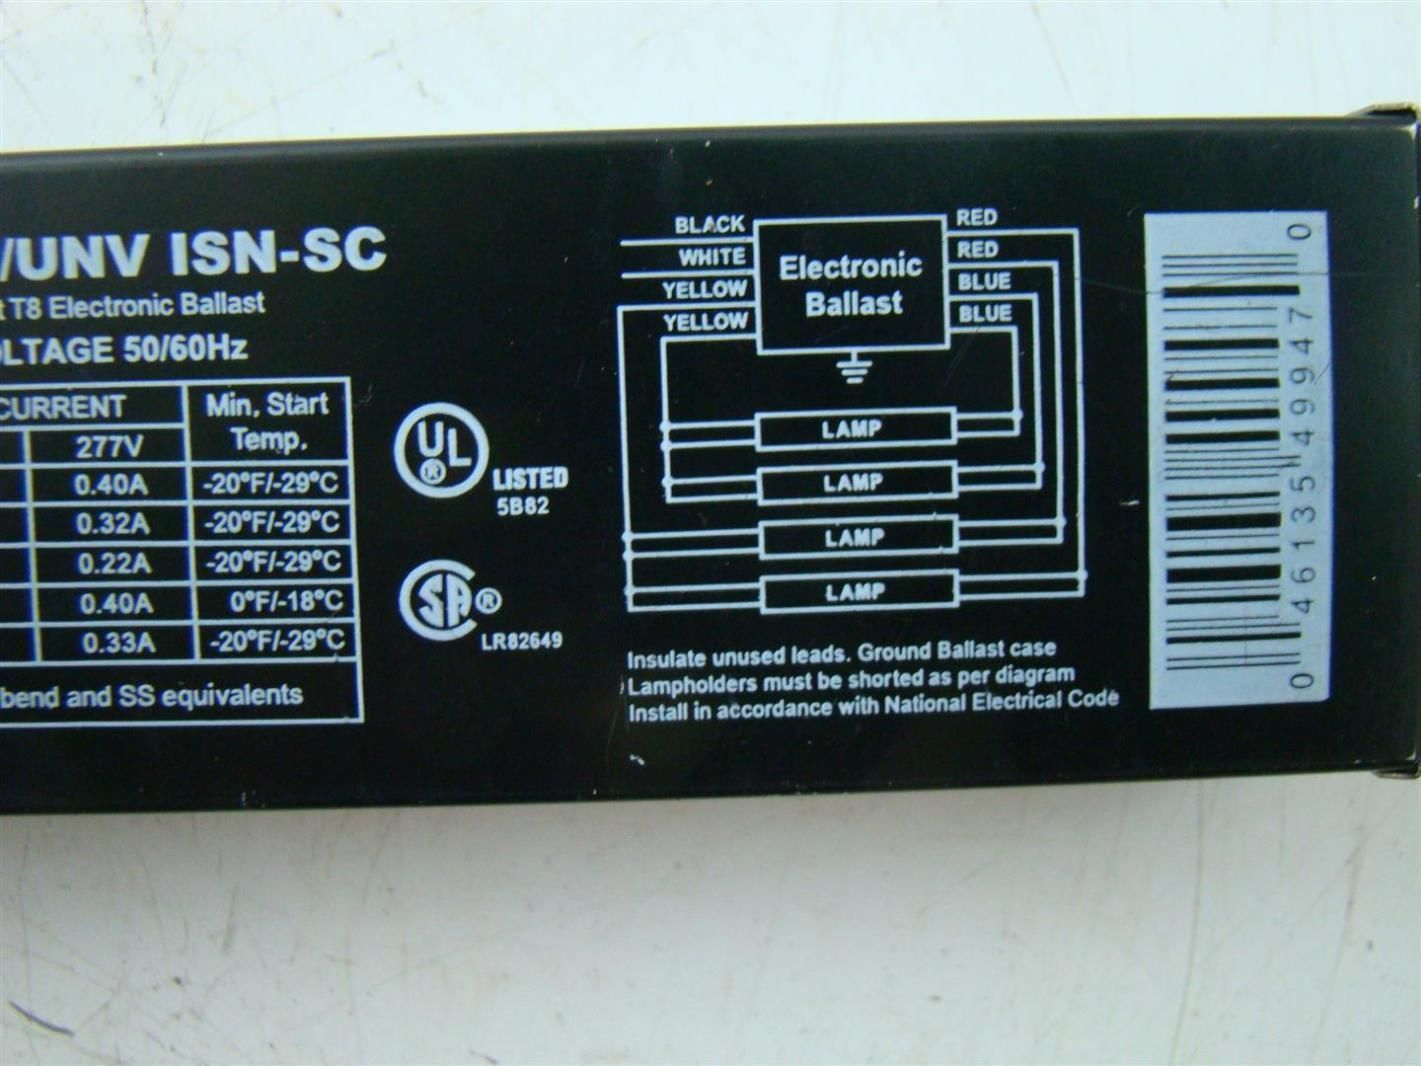 afp130 sylvania quicktronict8 ballast 120 277v qtp 4x32t8 unv isn sc 10 sylvania quicktronict8 ballast 120 277v qtp 4x32t8 unv isn sc sylvania qtp 4x32t8/unv isn-sc wiring diagram at n-0.co